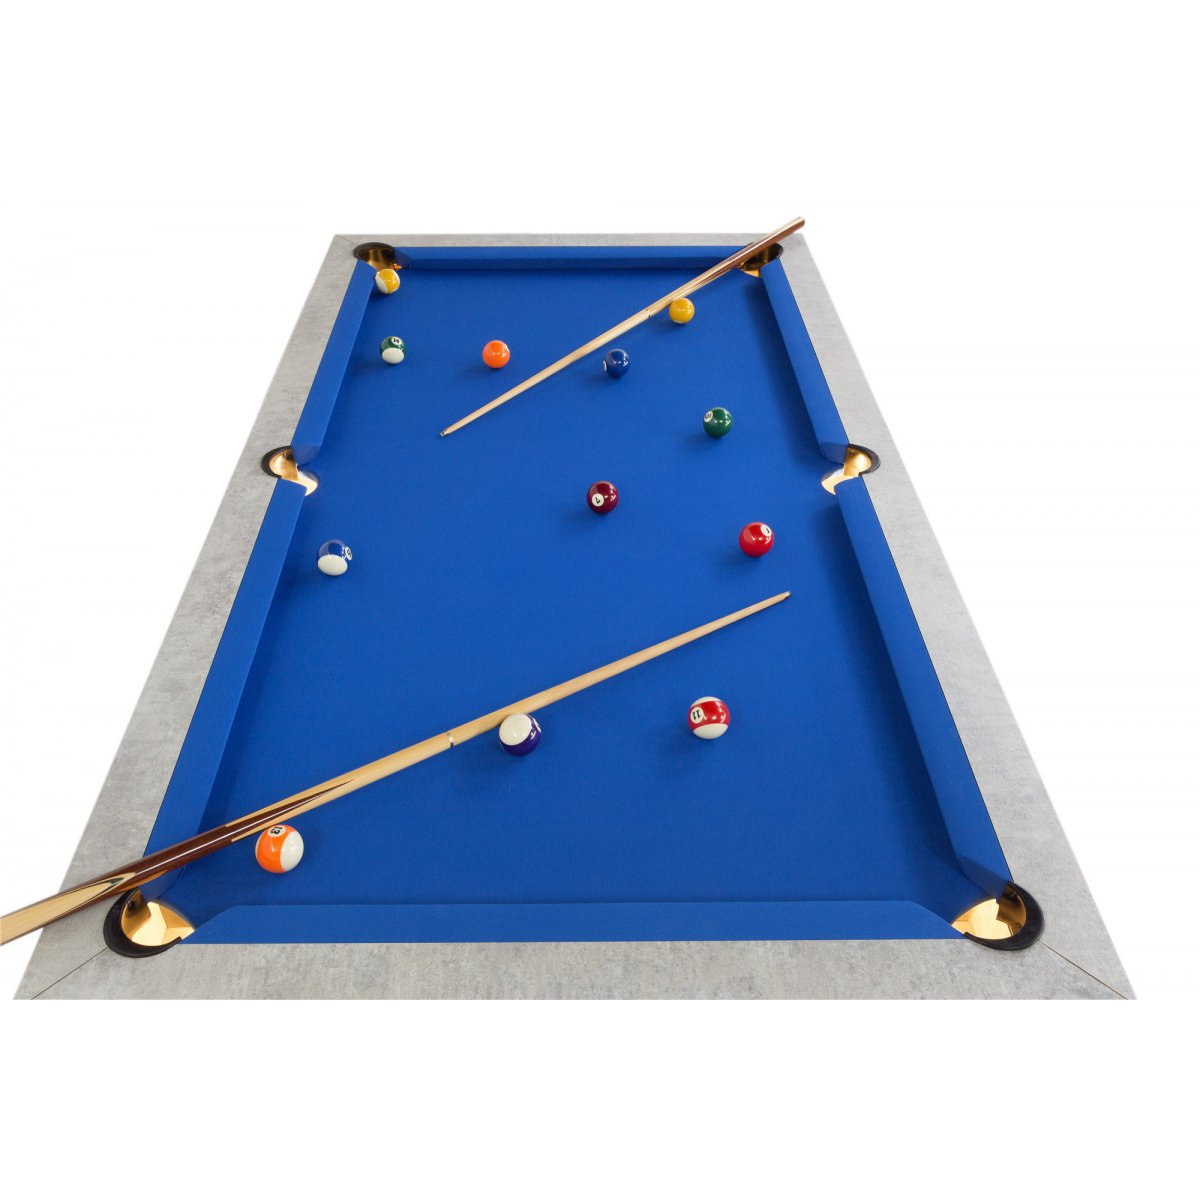 billard led clairez votre table de billard avec des leds. Black Bedroom Furniture Sets. Home Design Ideas